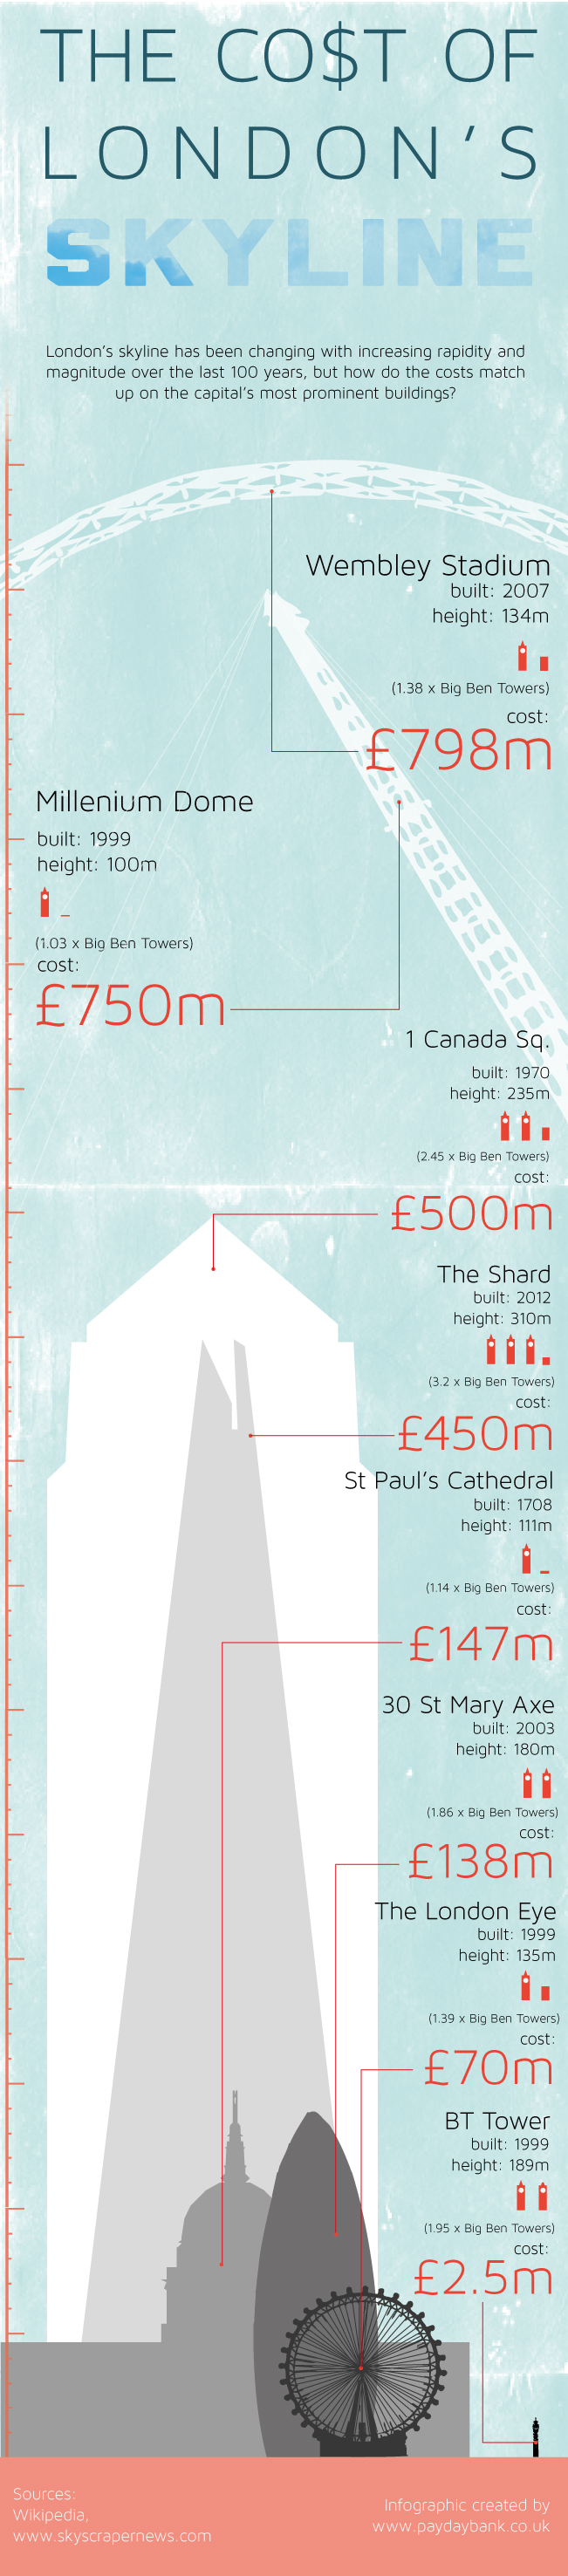 Euro's Spent On London's Skyline